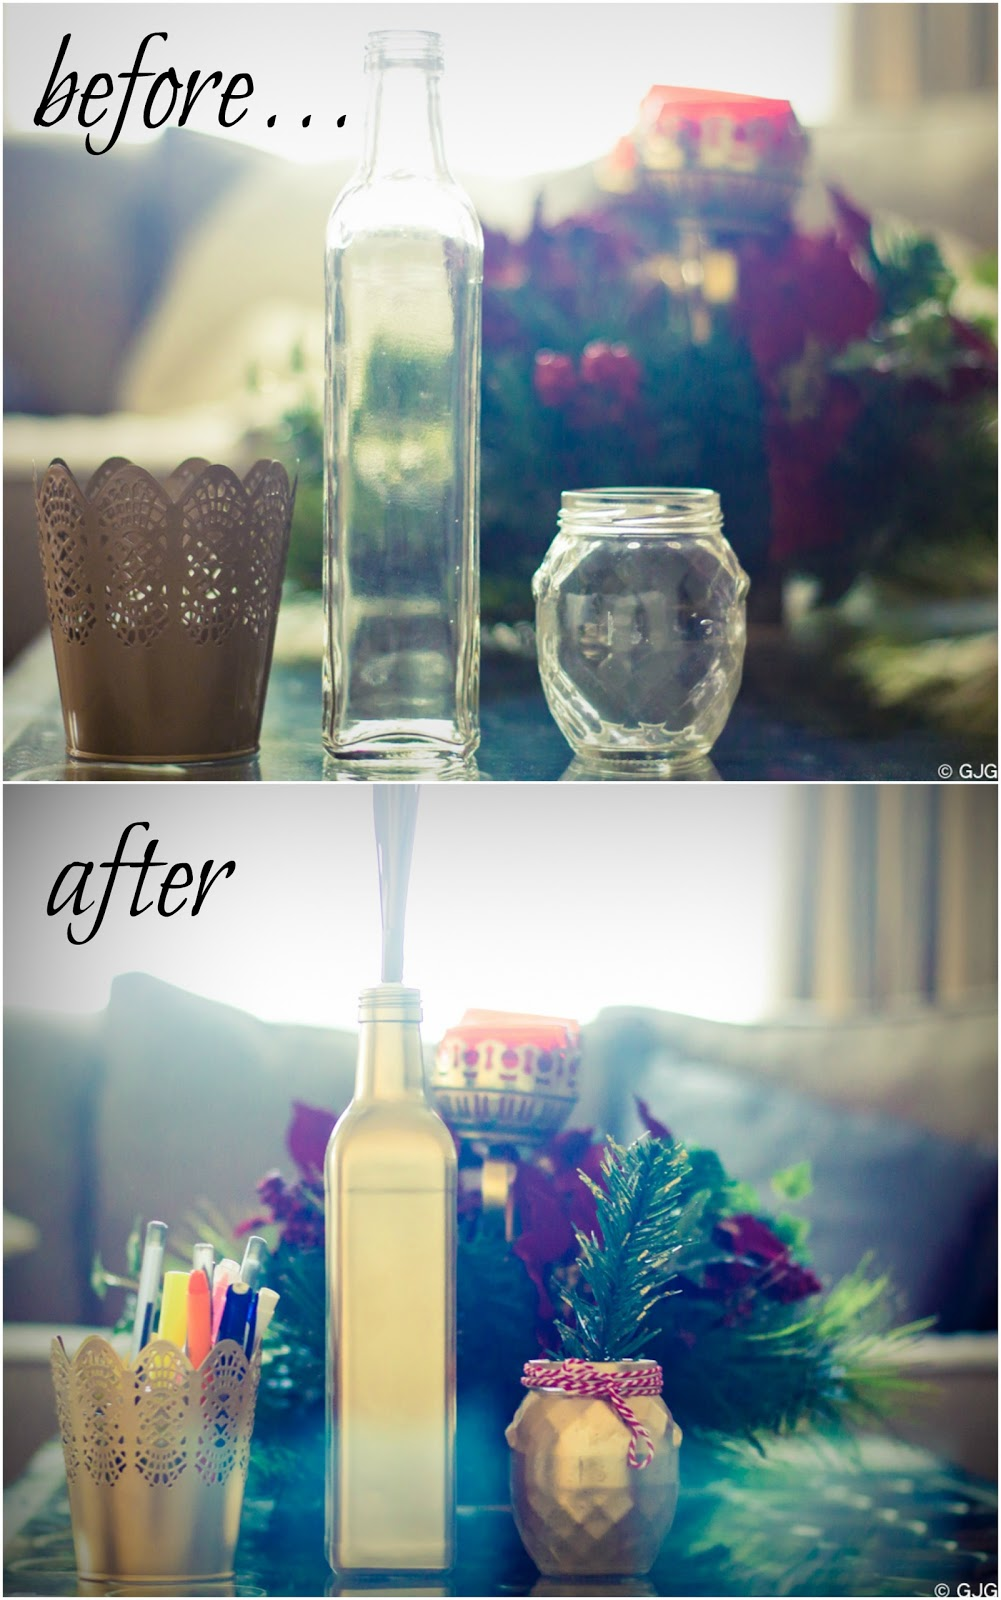 DIY: Home Decor Ideas Using Spray Paint